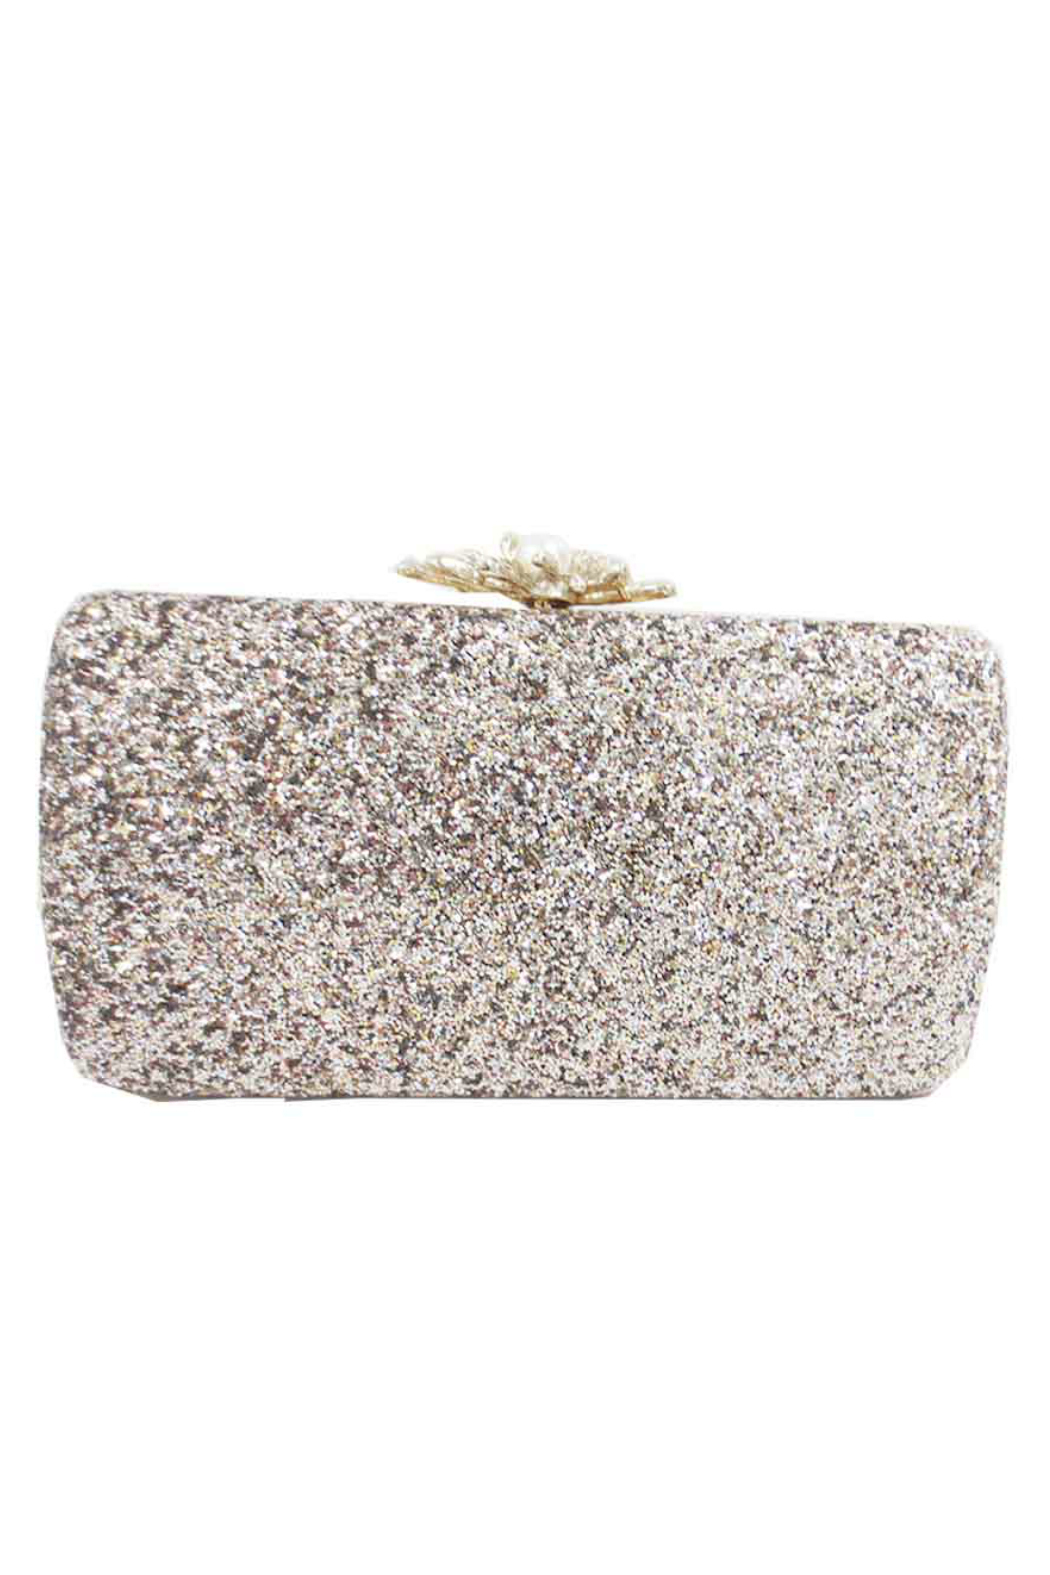 Sondra Roberts Glitter Fabric with Pearl Clasp Box Clutch - Main Image